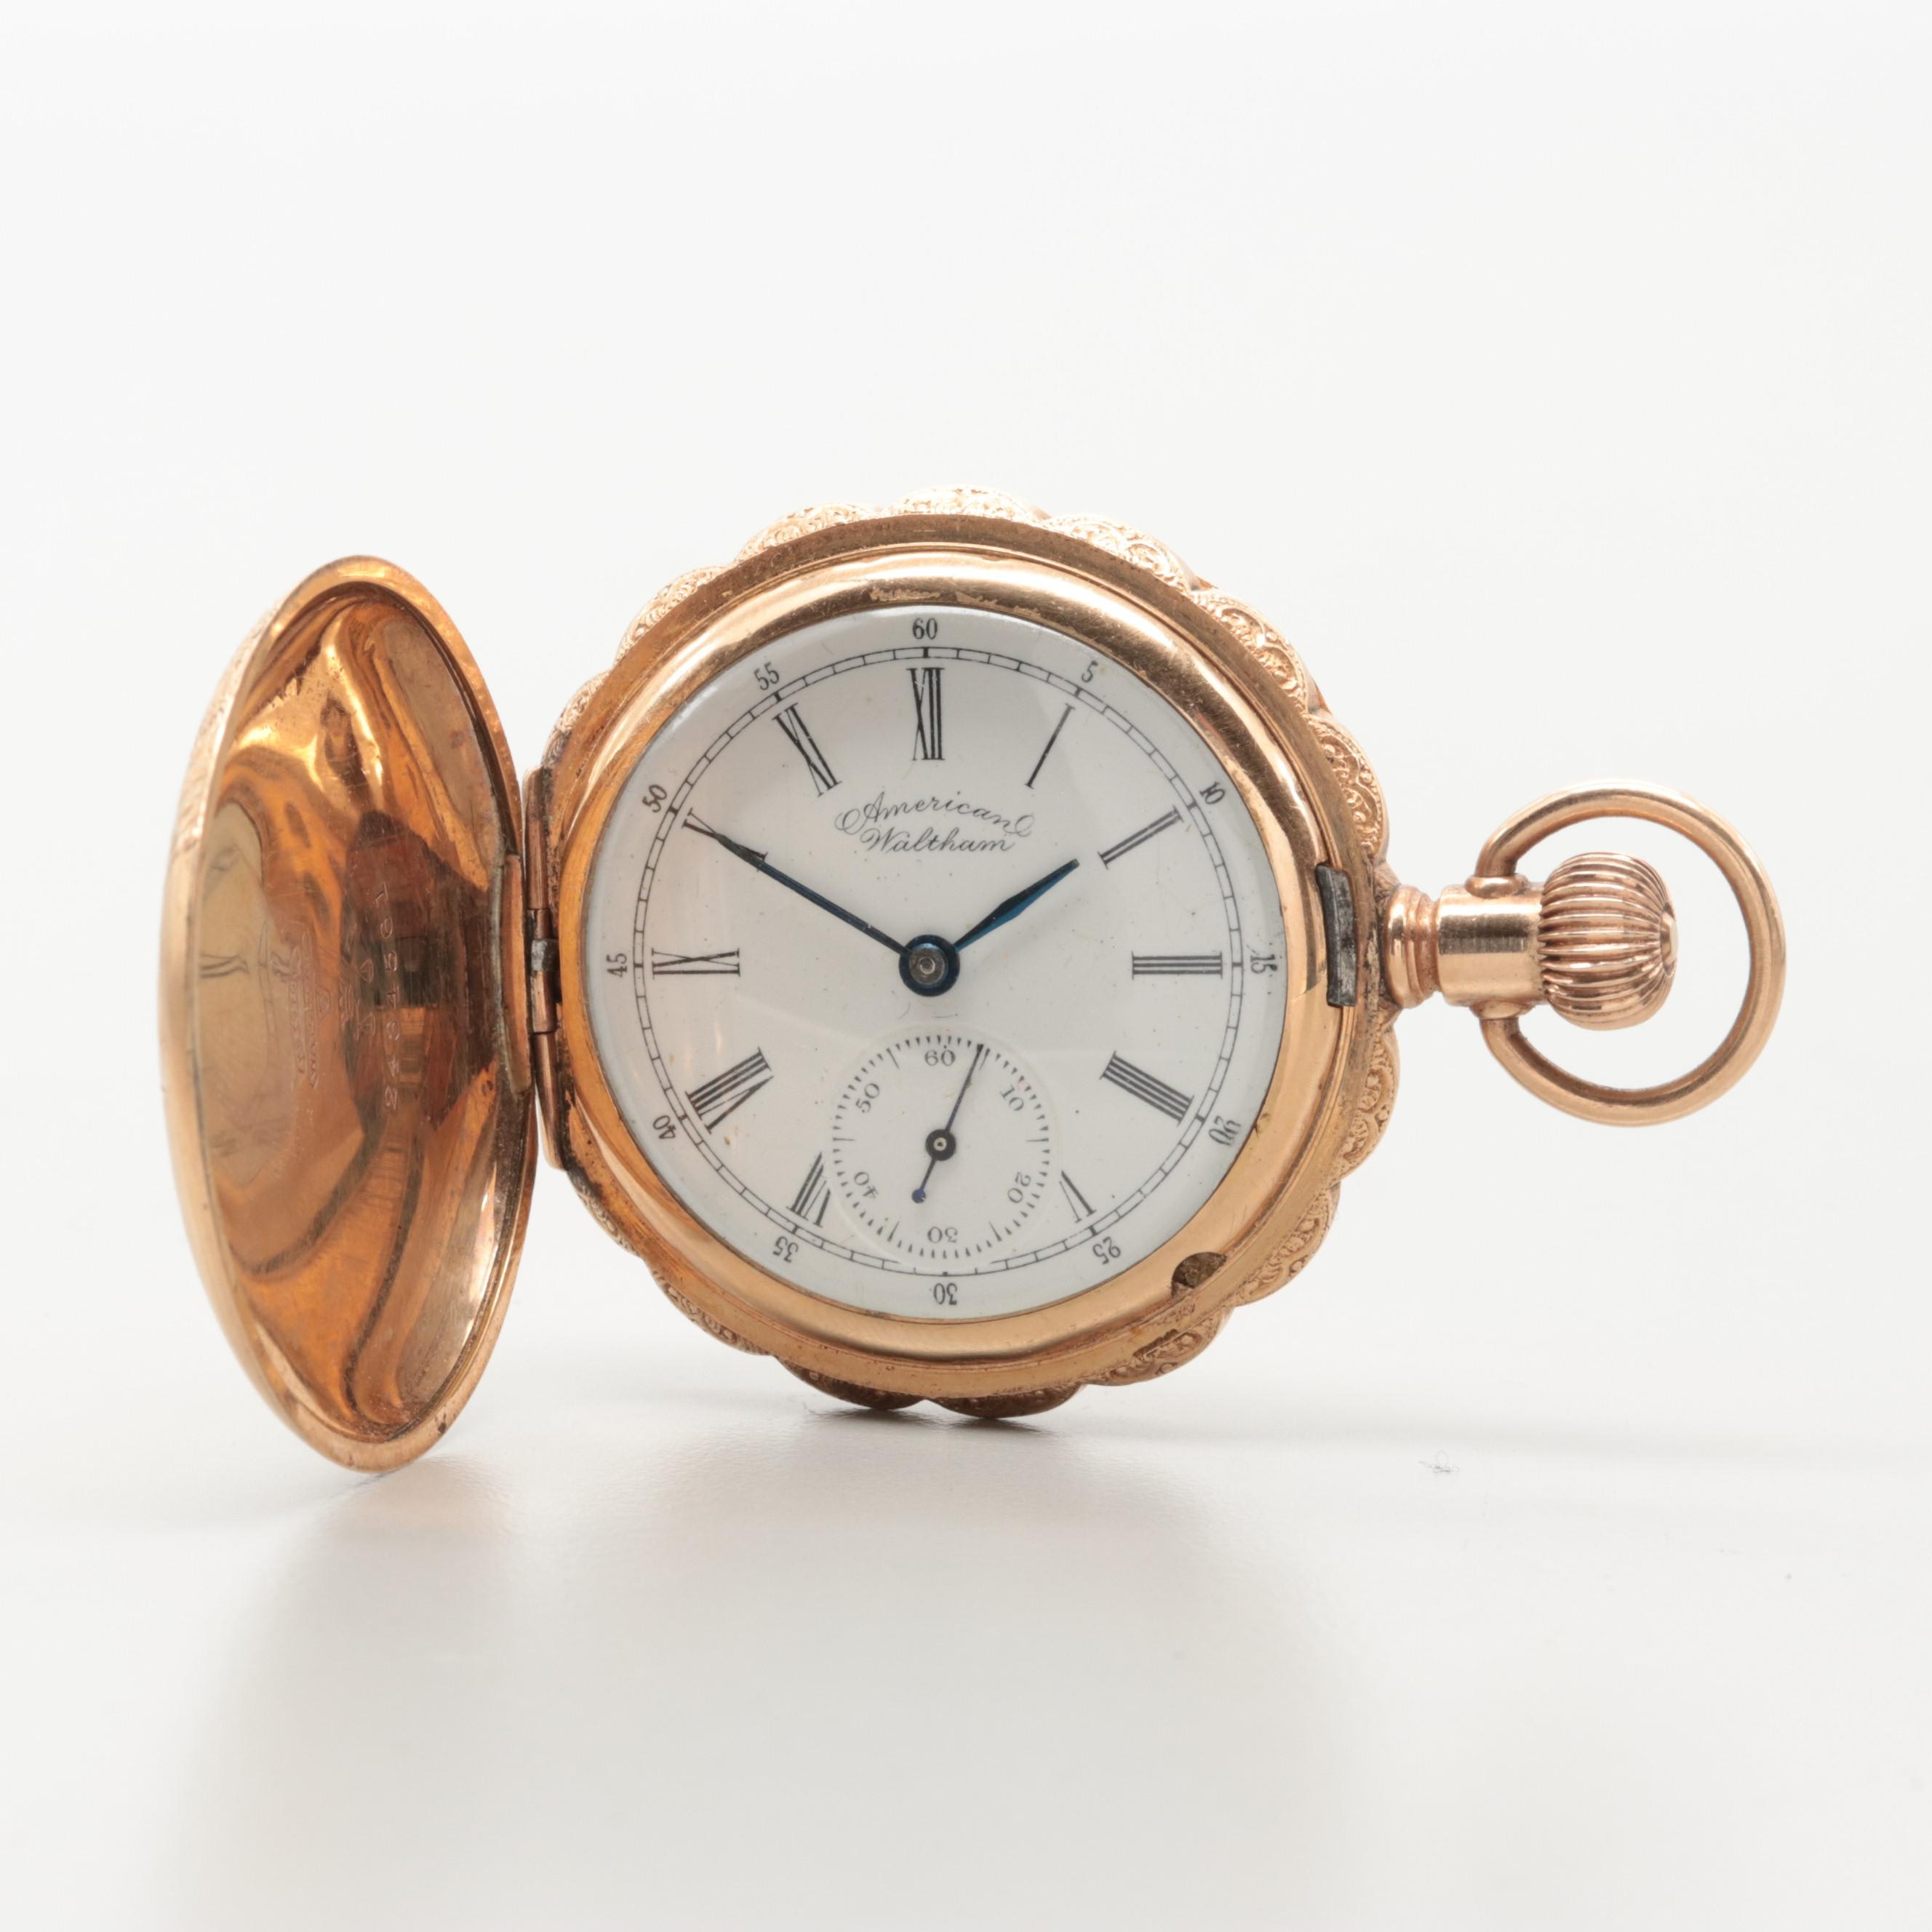 1893 American Waltham Gold Filled Hunting Case Pocket Watch With Scalloped Edges